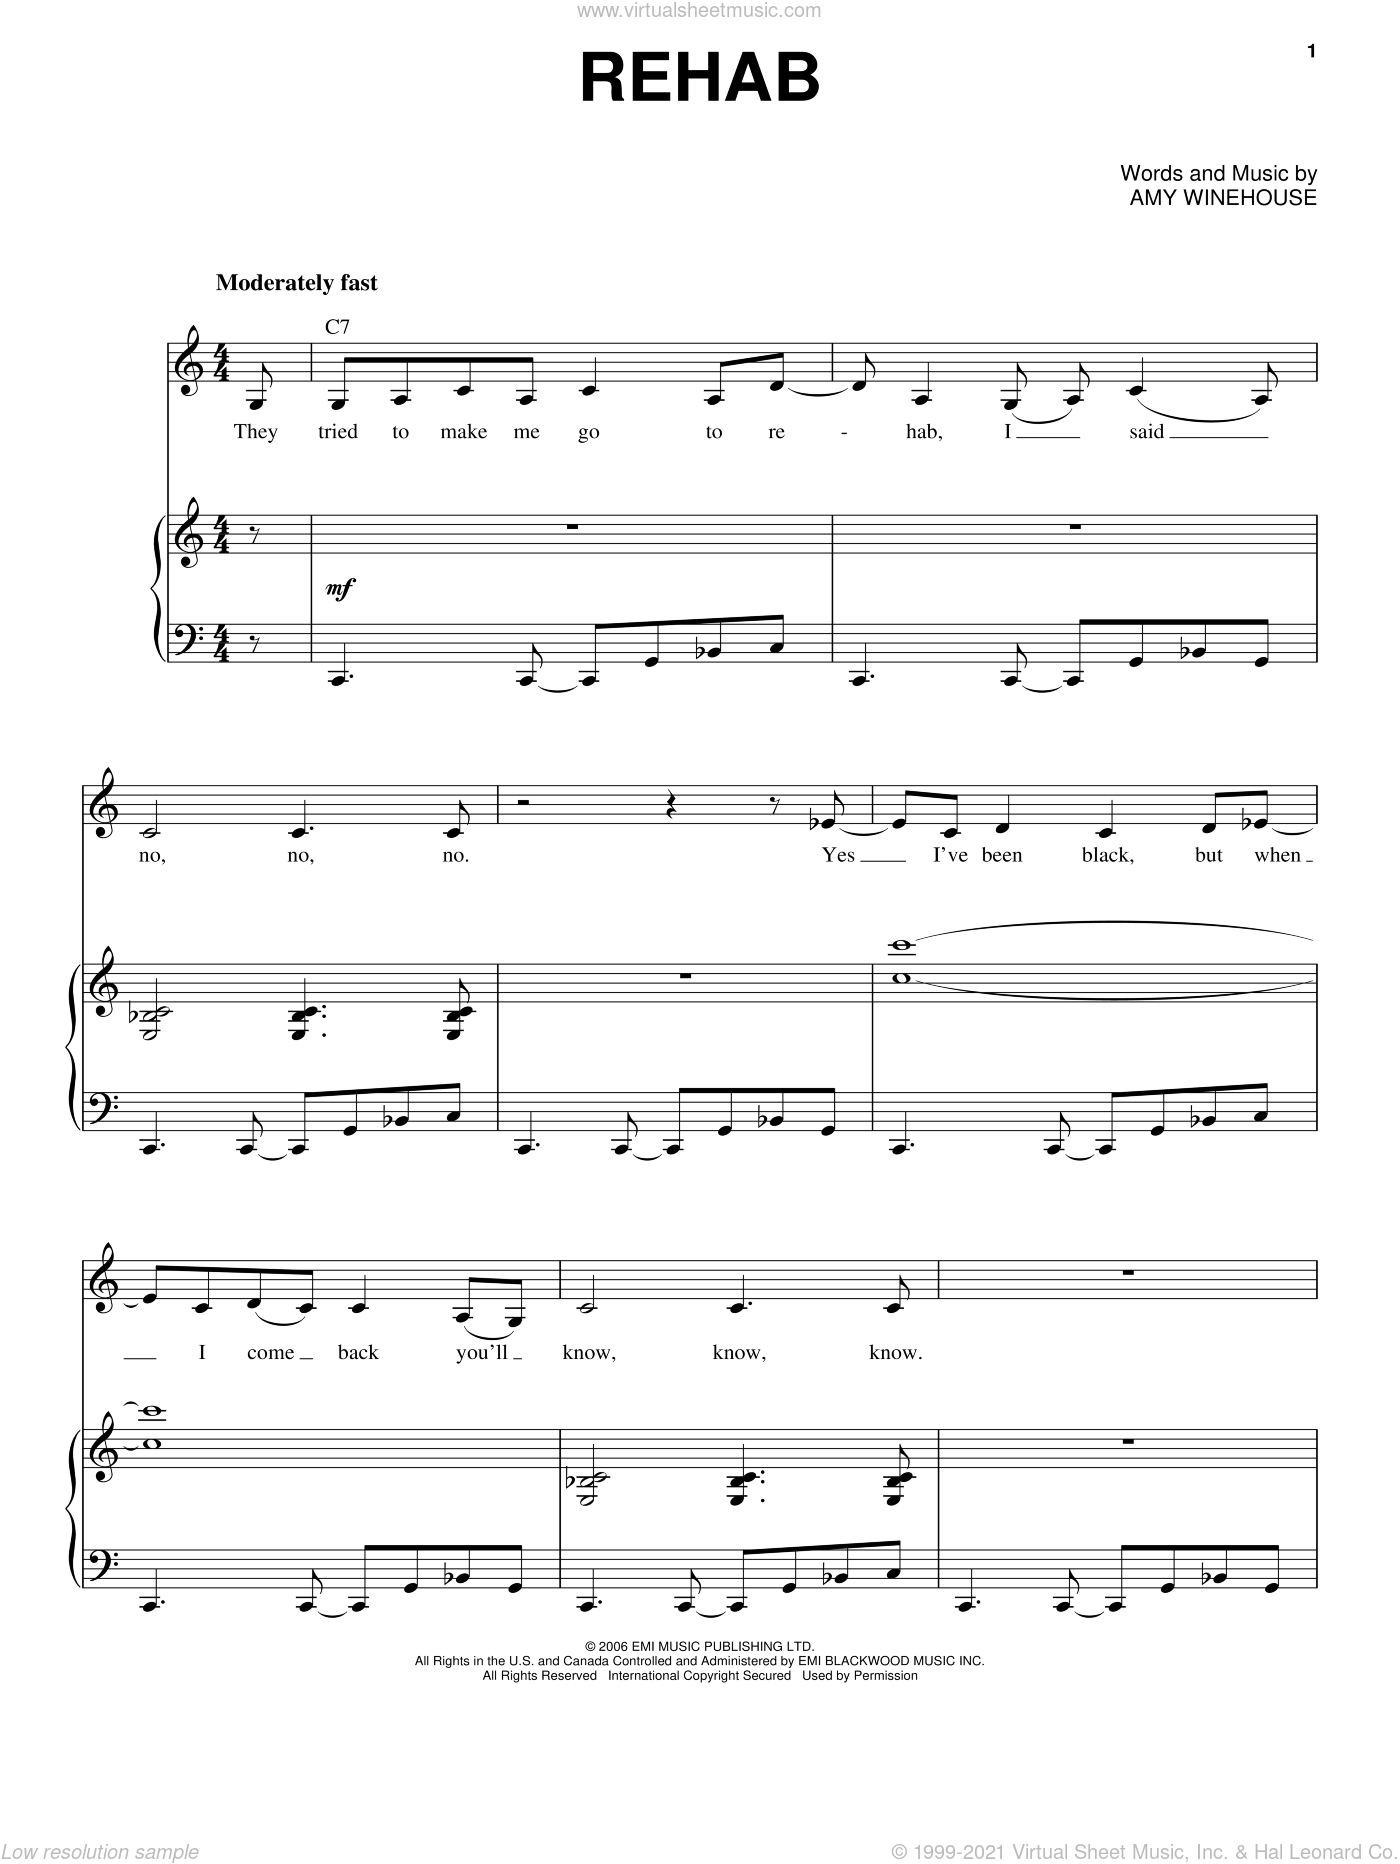 Rehab sheet music for voice and piano by Amy Winehouse